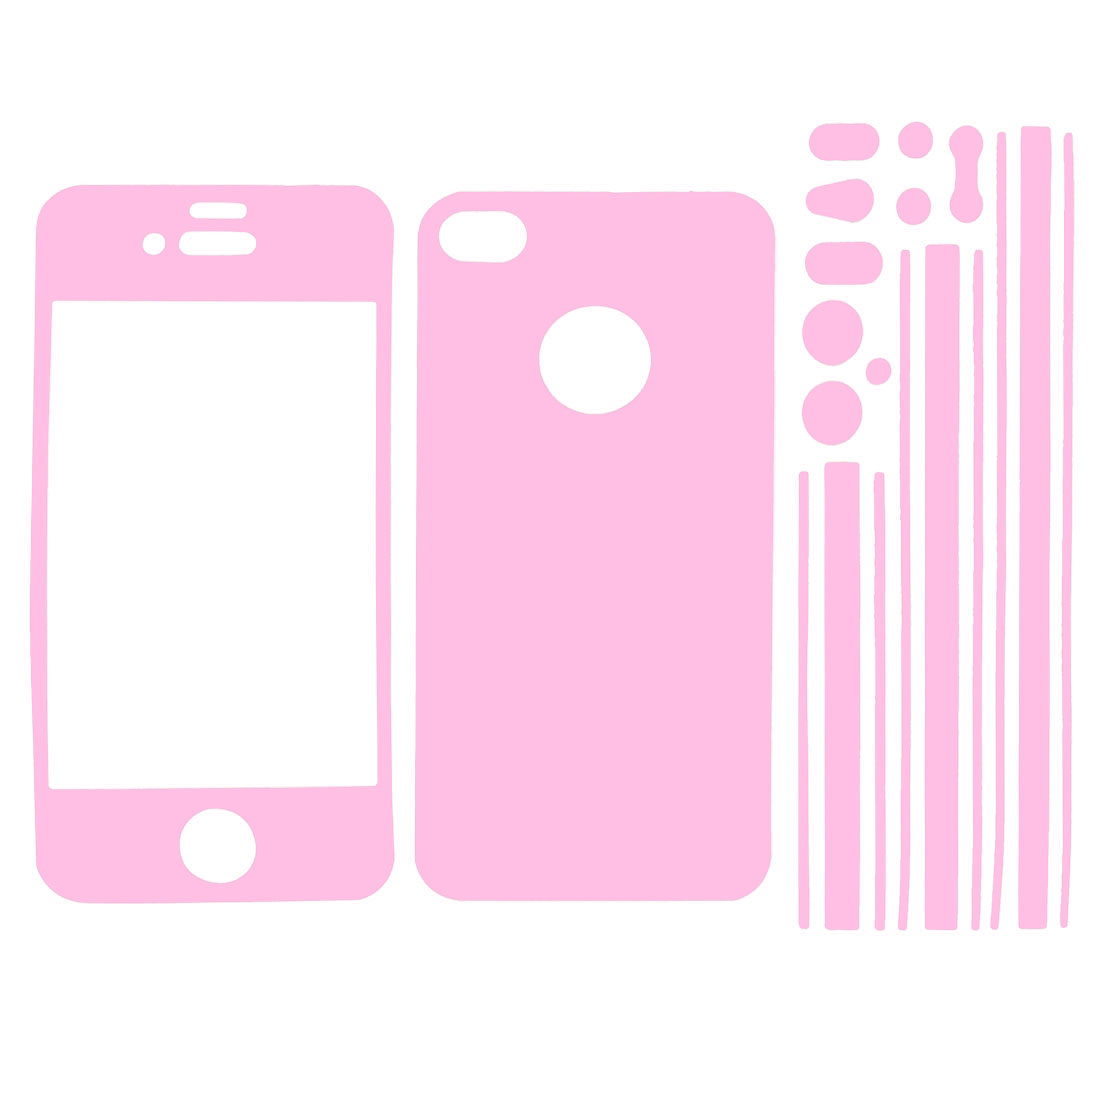 Pink Vinyl Front Back Frame Skin Sticker Film for iPhone 4 4G 4S 4GS